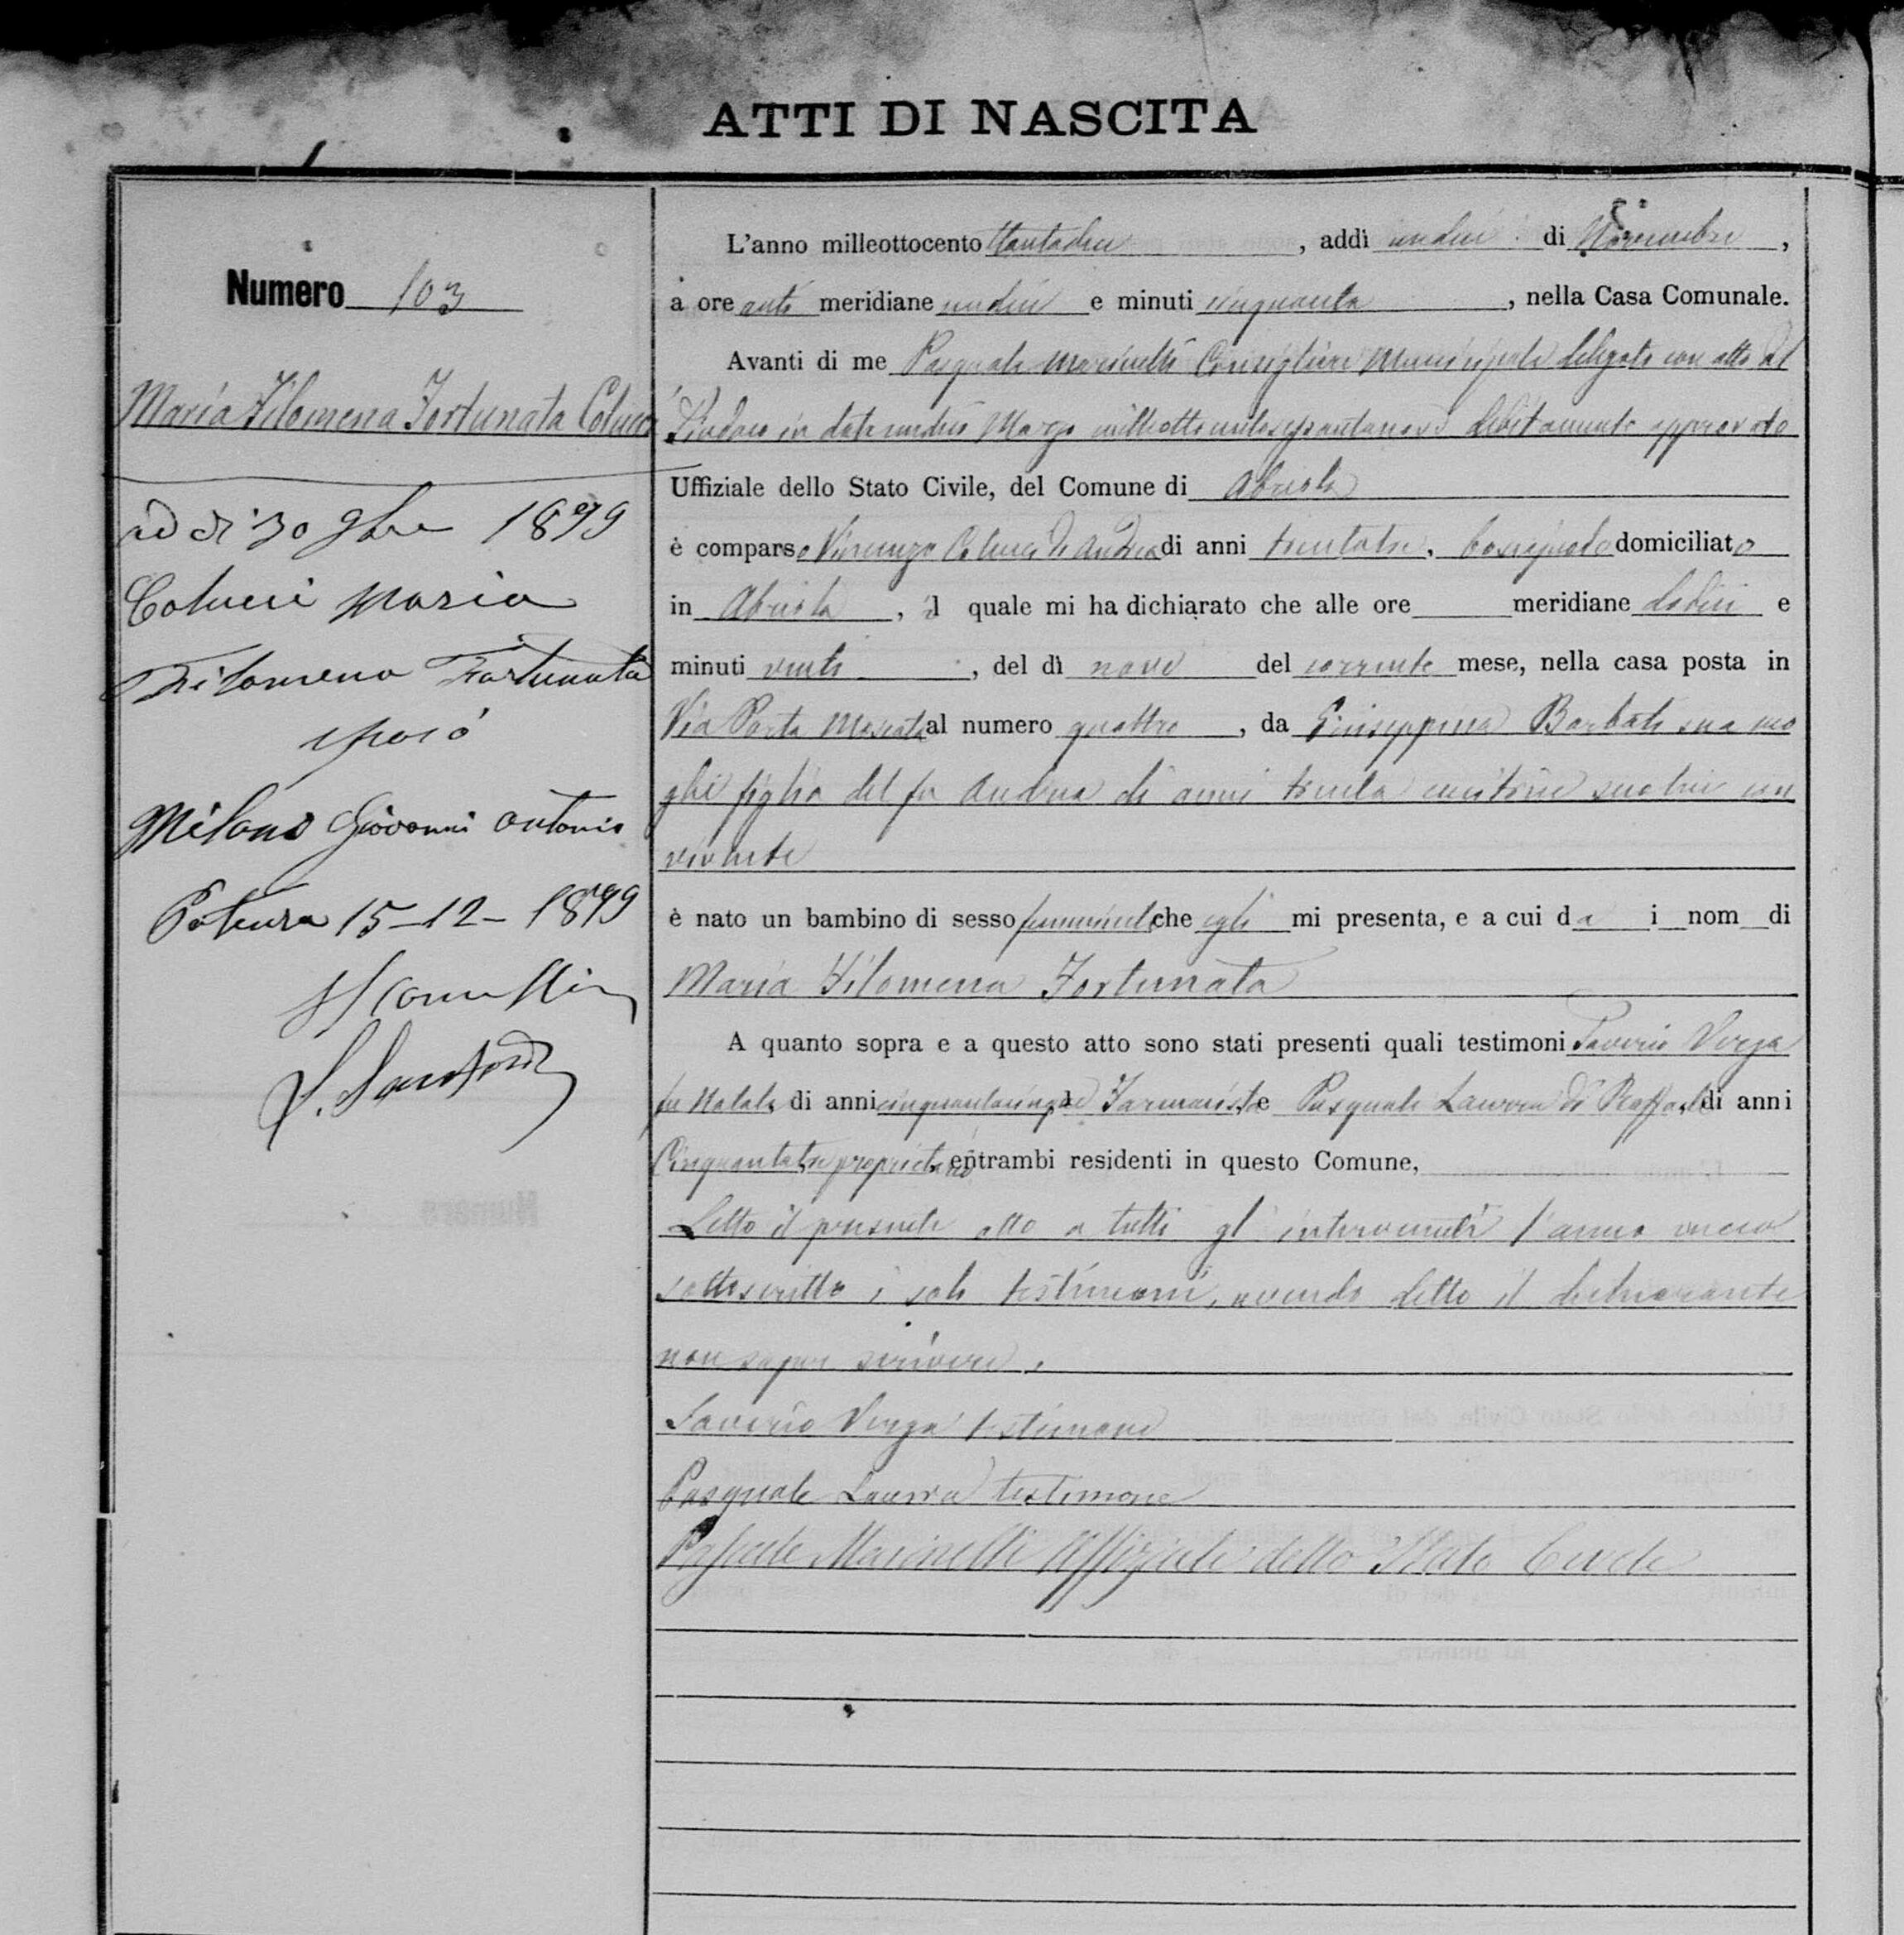 Milano  Filemena Nov 12 1882 birth record.jpg